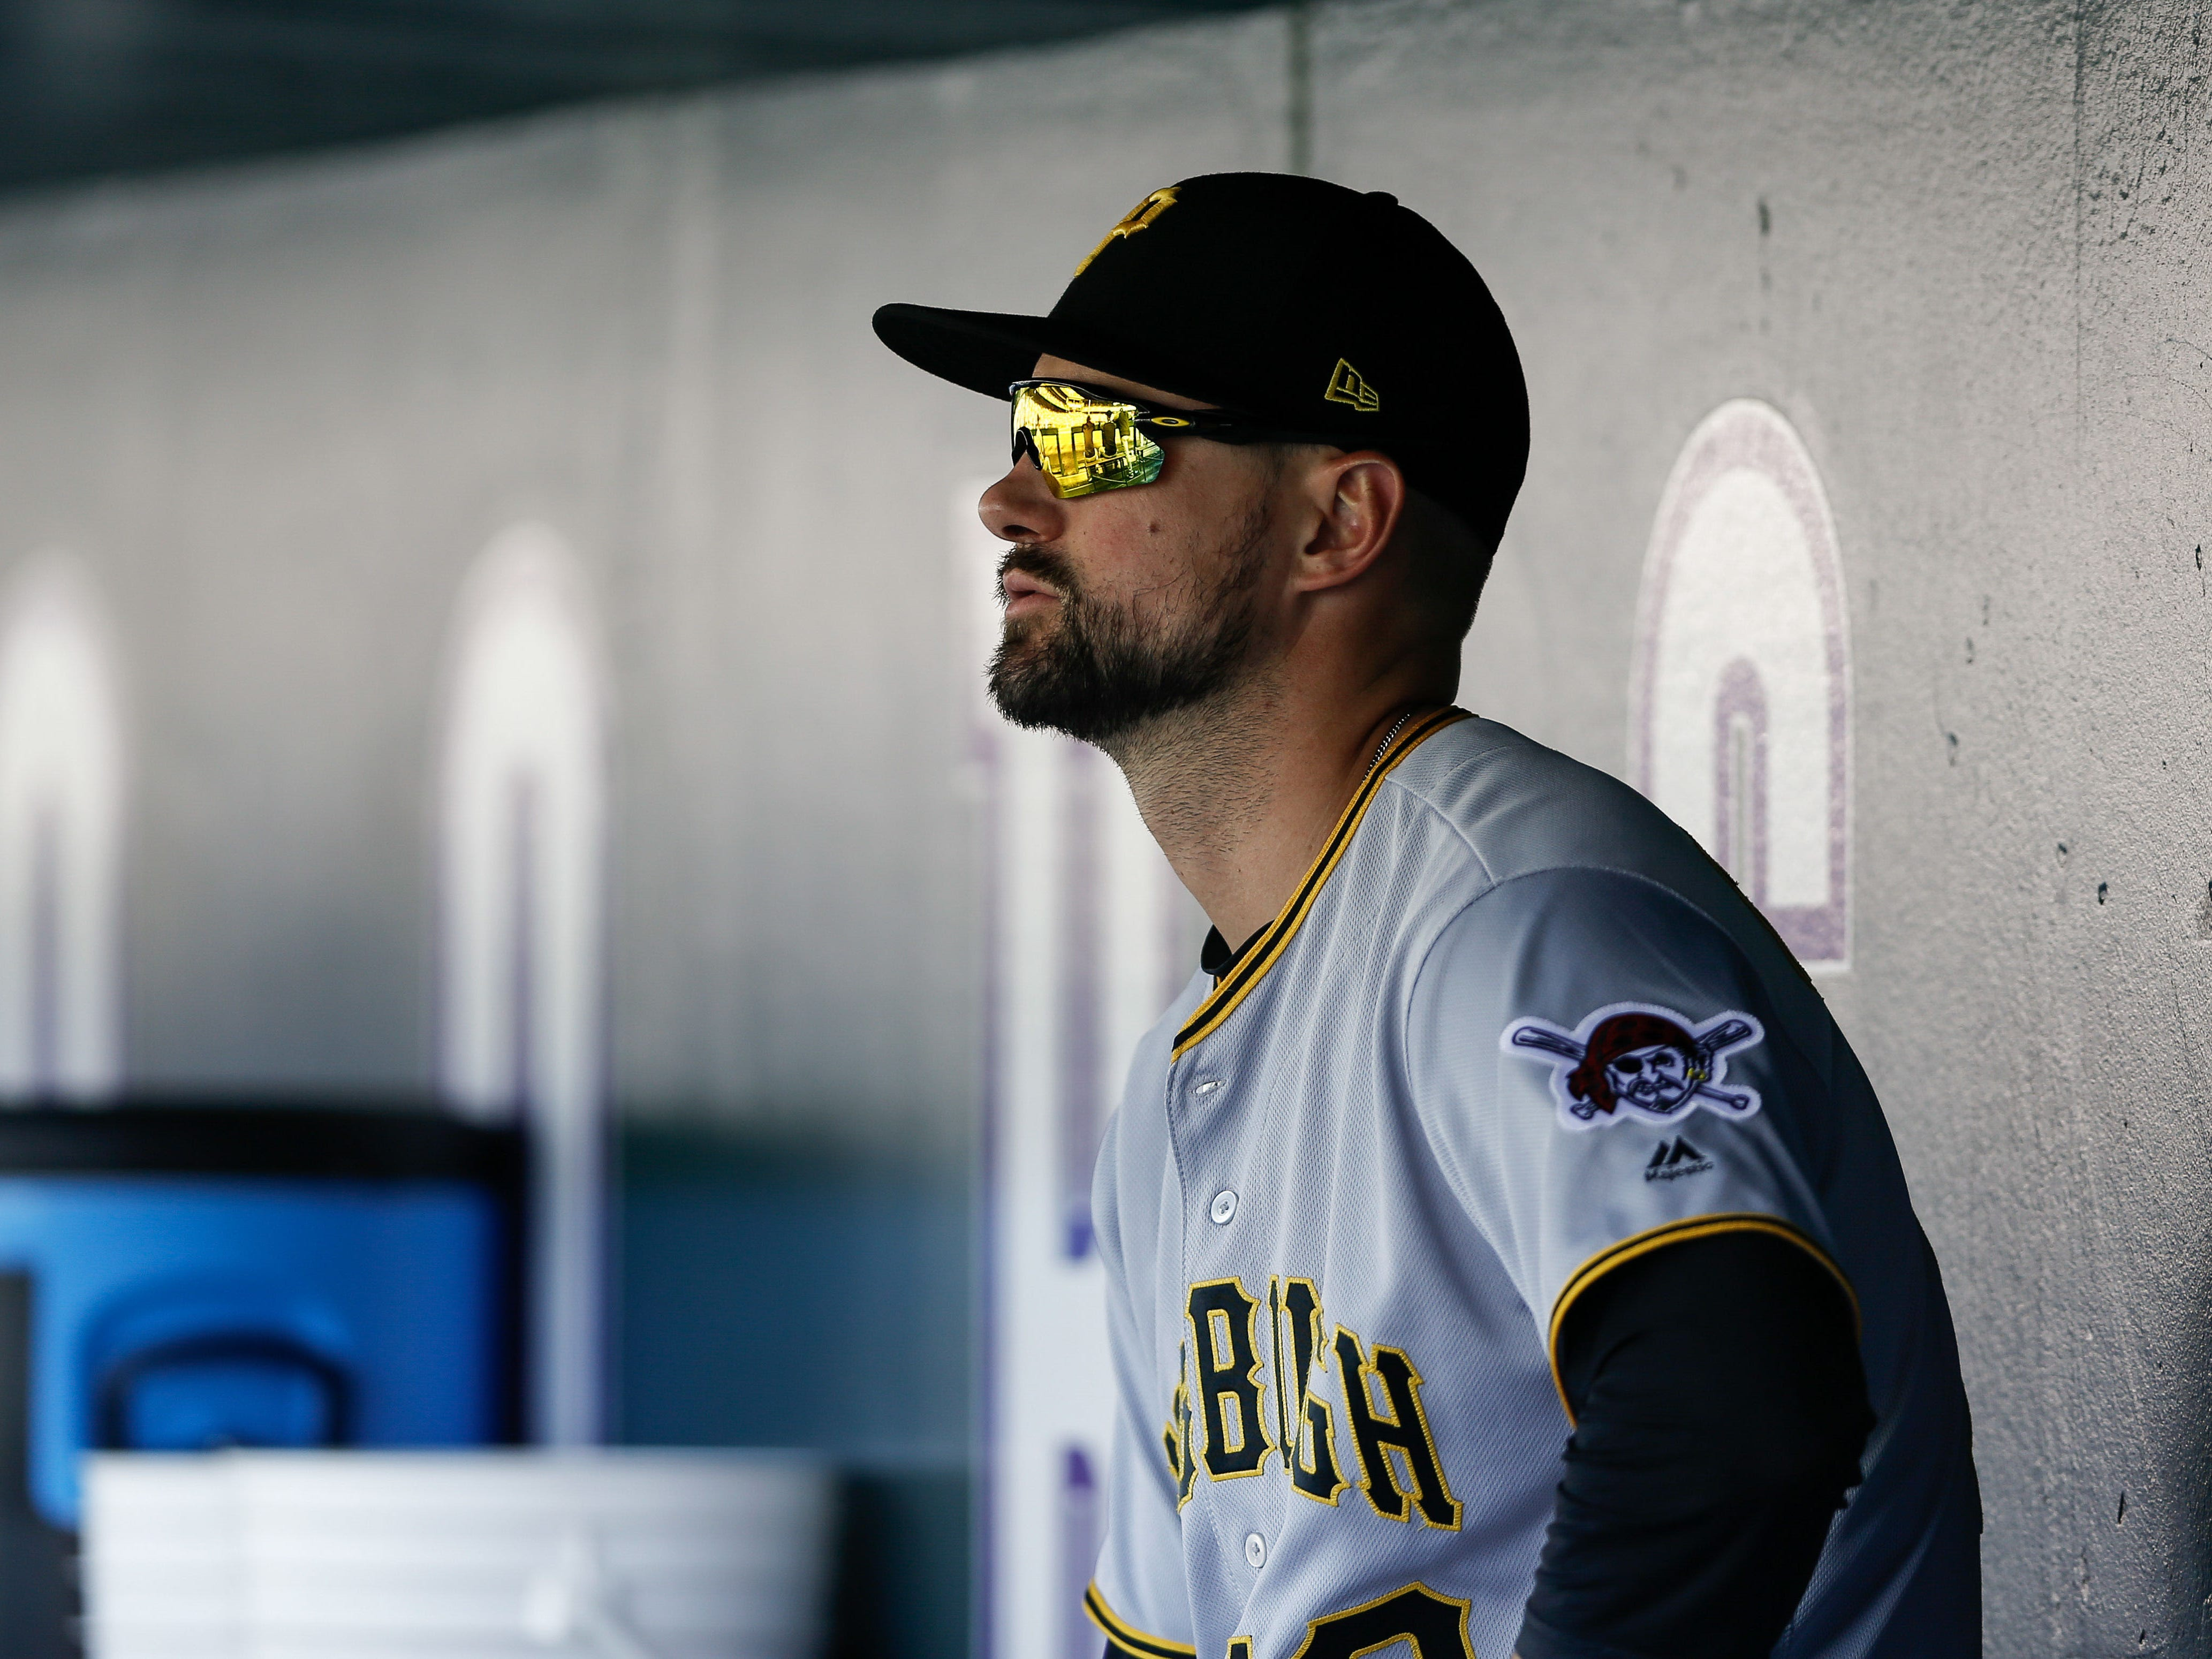 Pittsburgh Pirates shortstop Jordy Mercer in the dugout against the Colorado Rockies at Coors Field, Aug. 8, 2018.